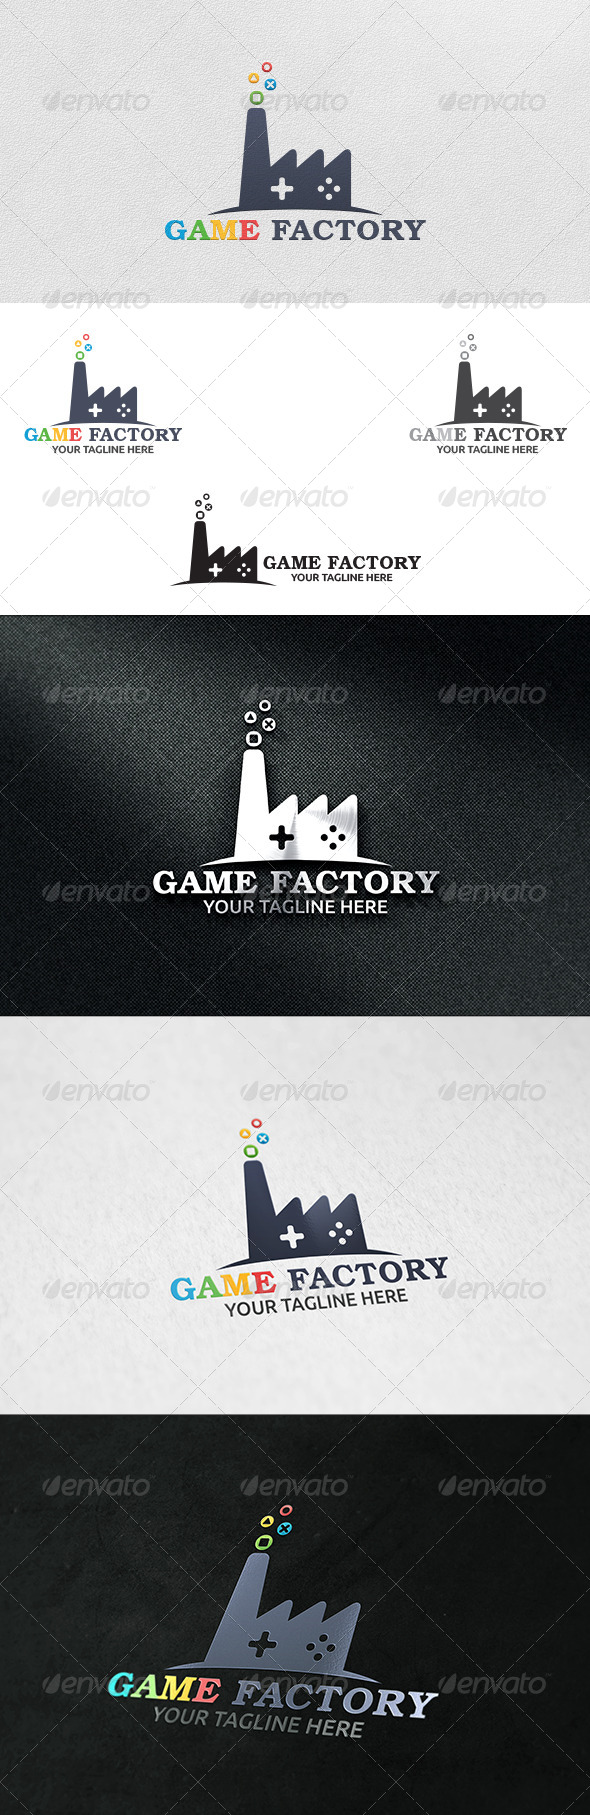 GraphicRiver Game Factory Logo Template 6228342